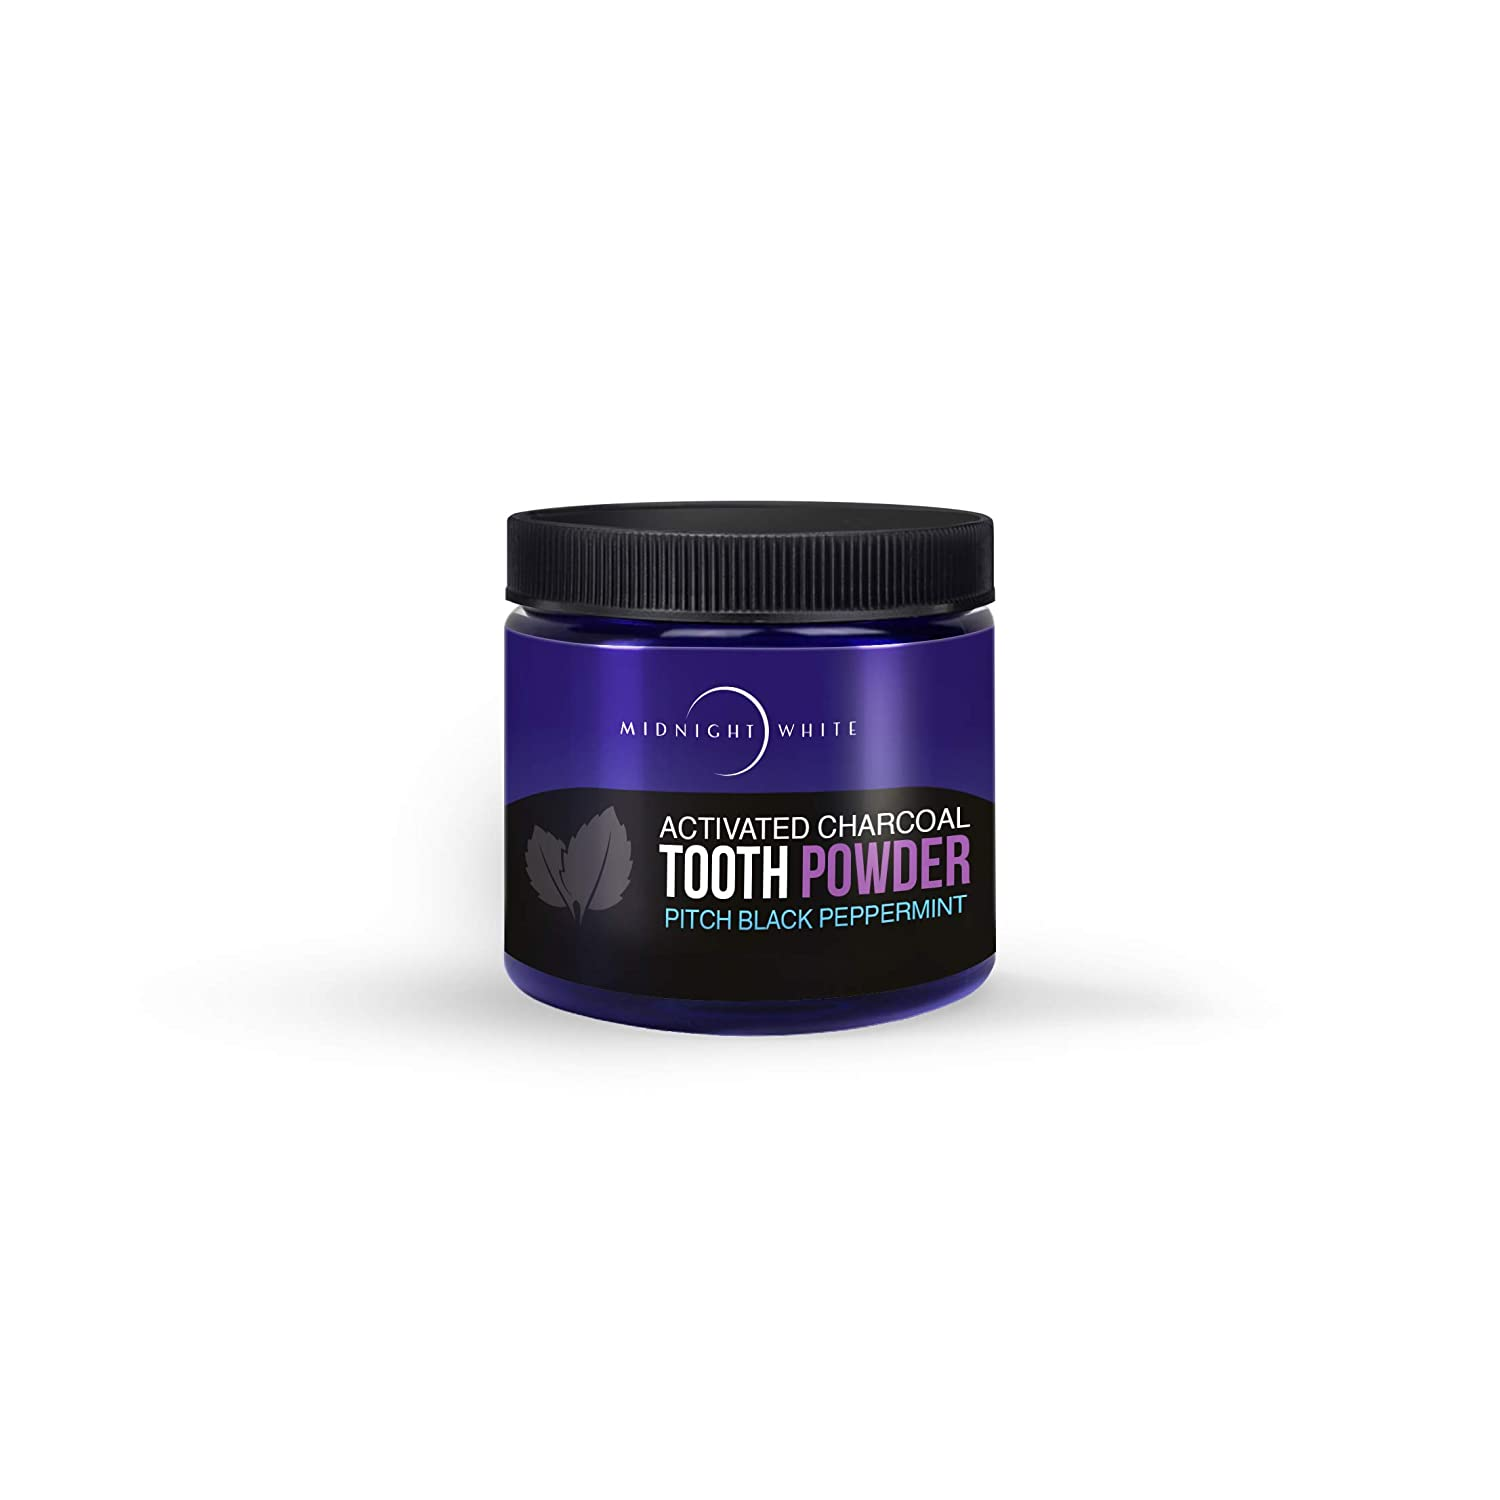 Midnight White Natural Whitening Activated Coconut Charcoal Tooth Powder Peppermint 2 oz | Natural Teeth Whitener | Fresh Breath | Organic Teeth Cleaning Coco Charcoal Powder